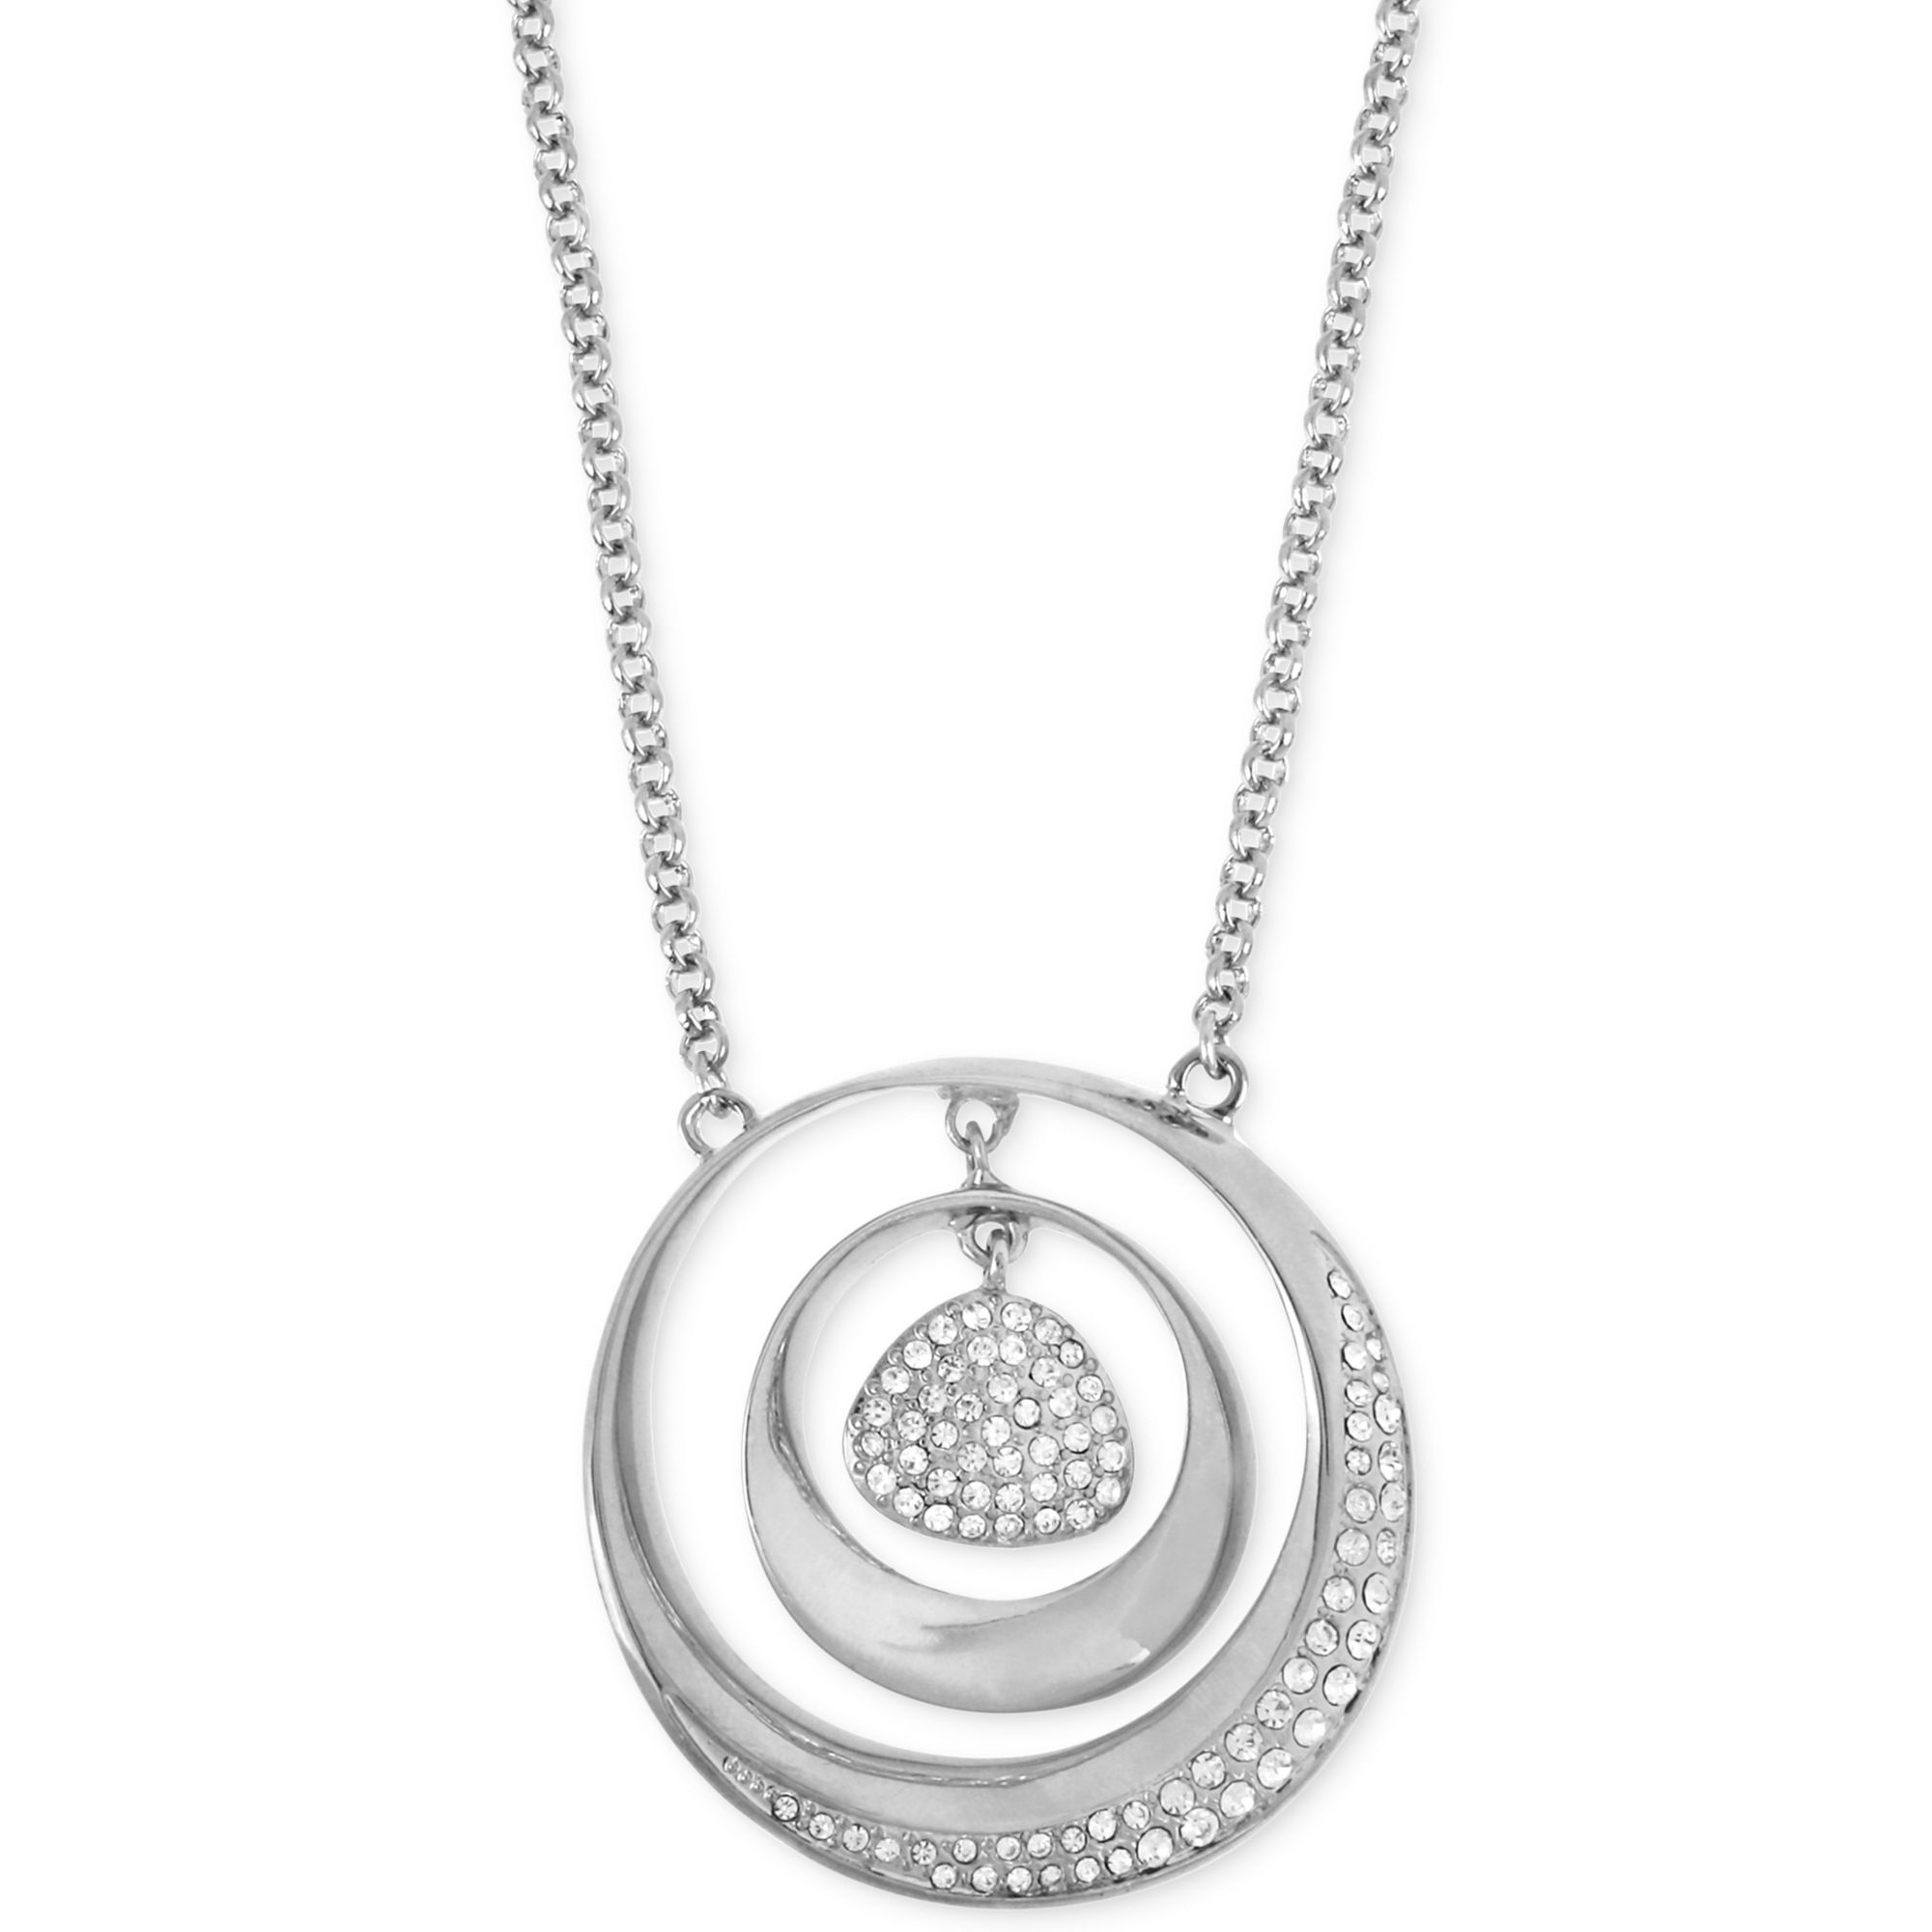 robert morris jewelry bar pendant necklace robert morris silvertone pave sculptural orbital